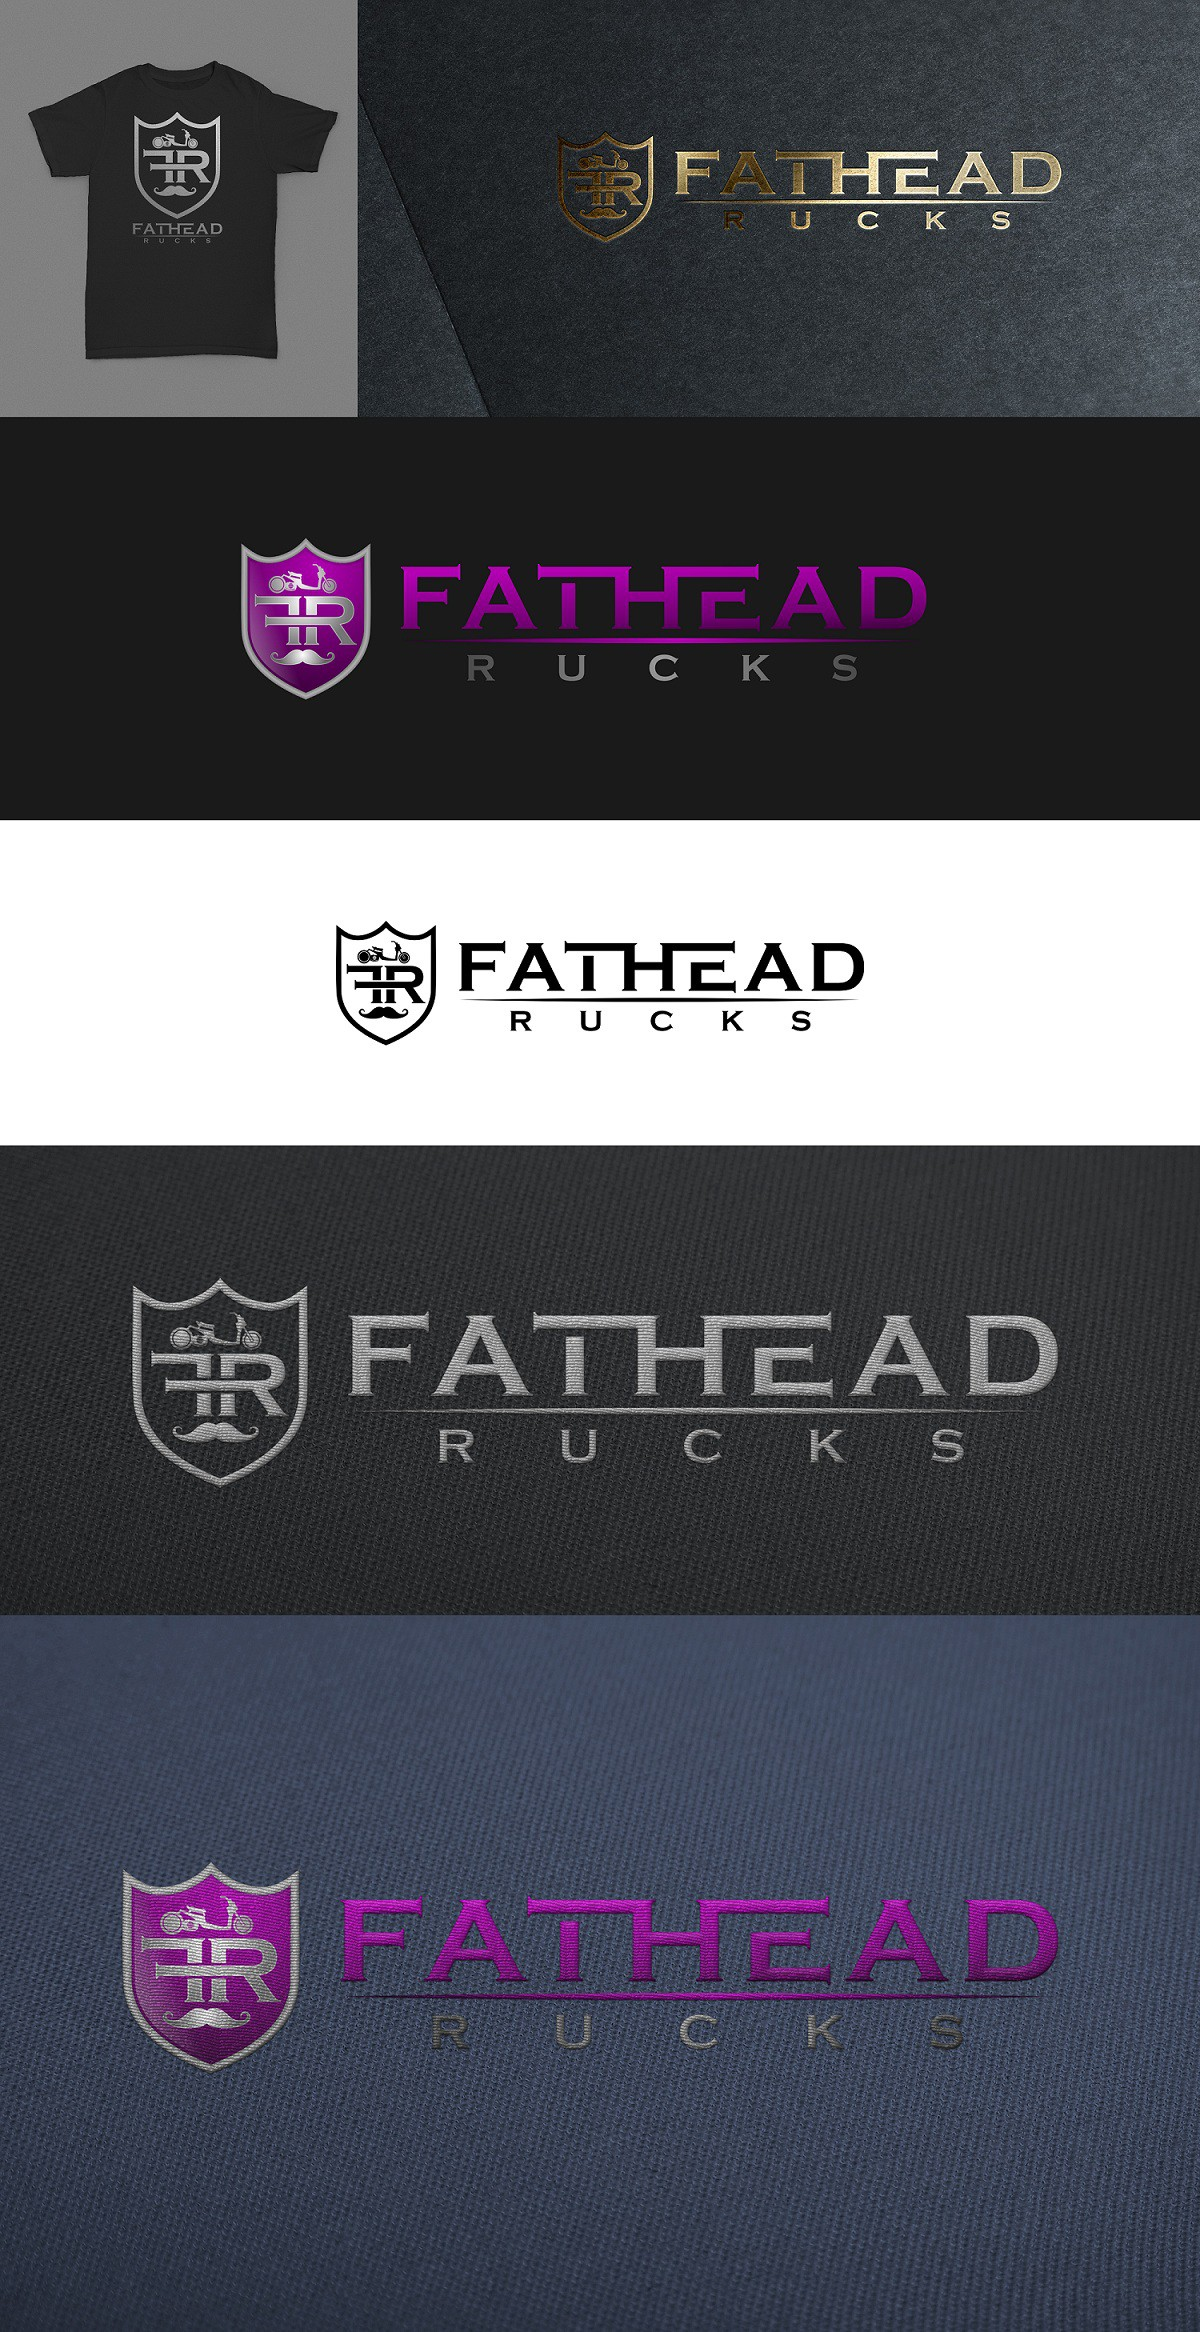 Be a part of introducing Fathead Rucks custom mopeds to the Northeast